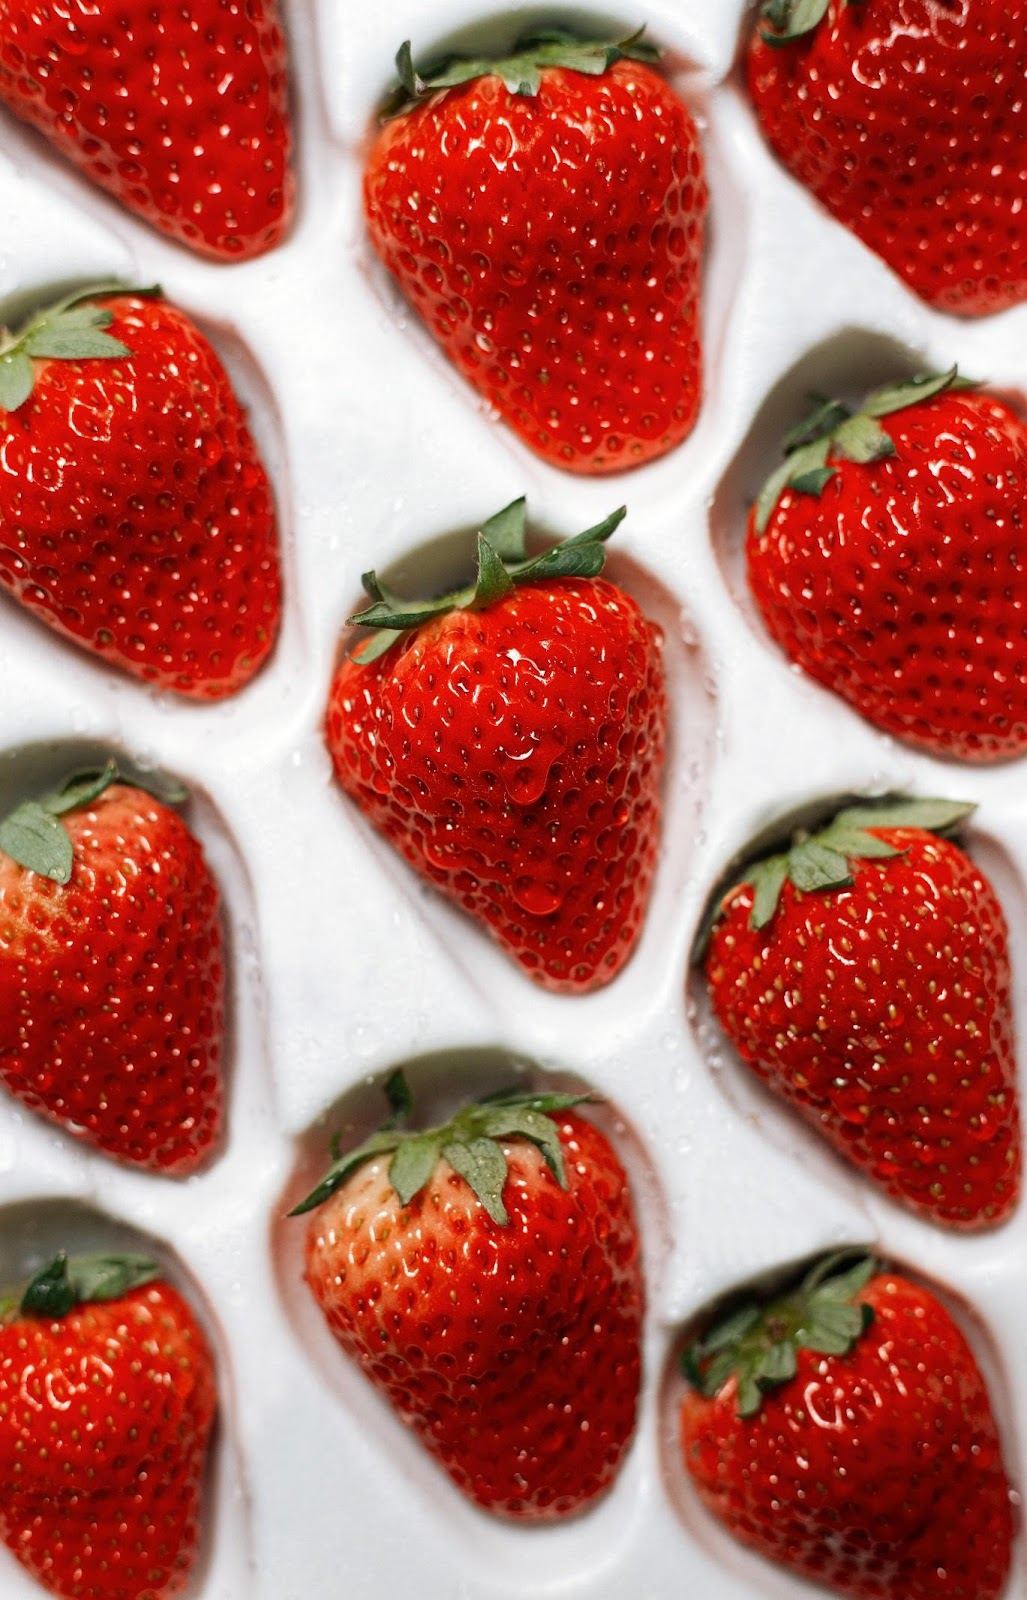 A group of strawberries  Description automatically generated with medium confidence